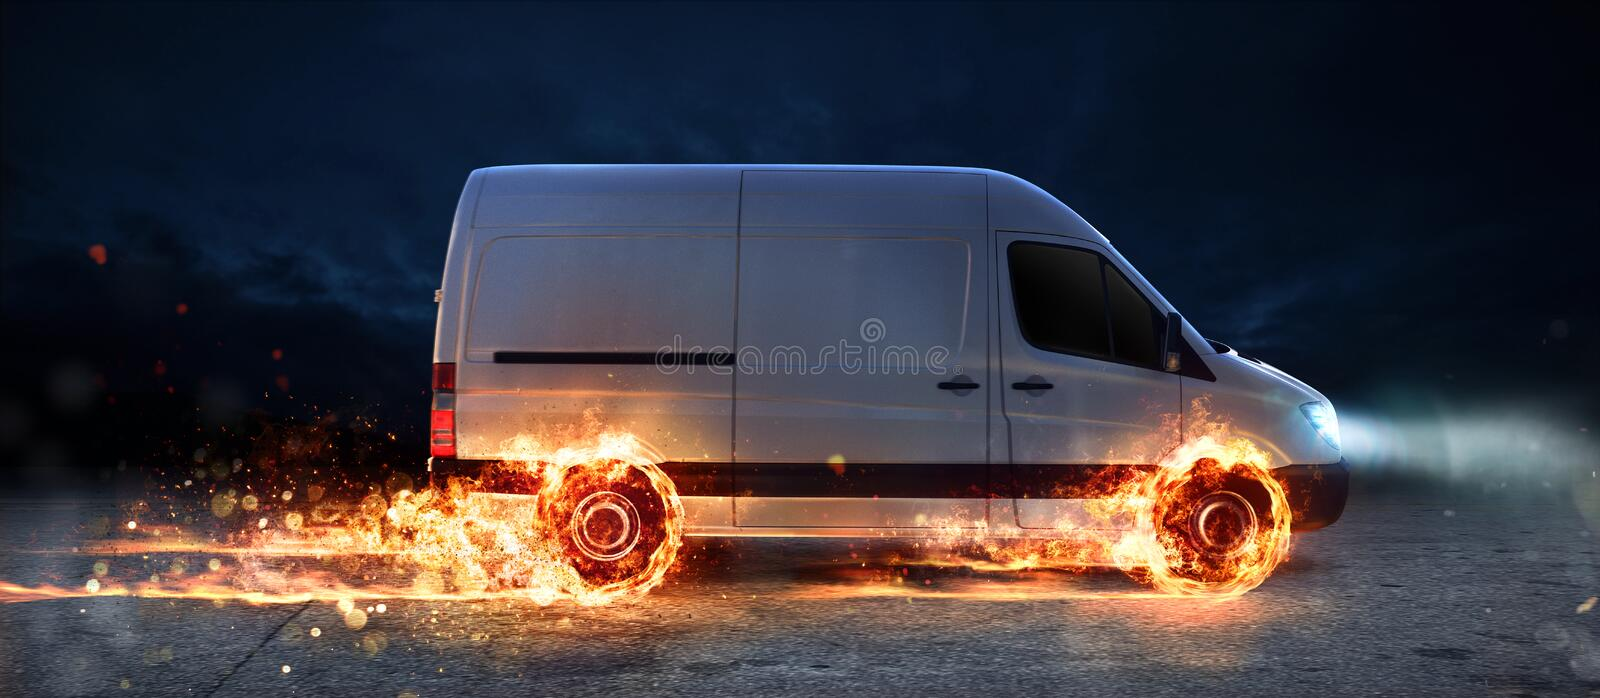 Super fast delivery of package service with van with wheels on fire stock photography